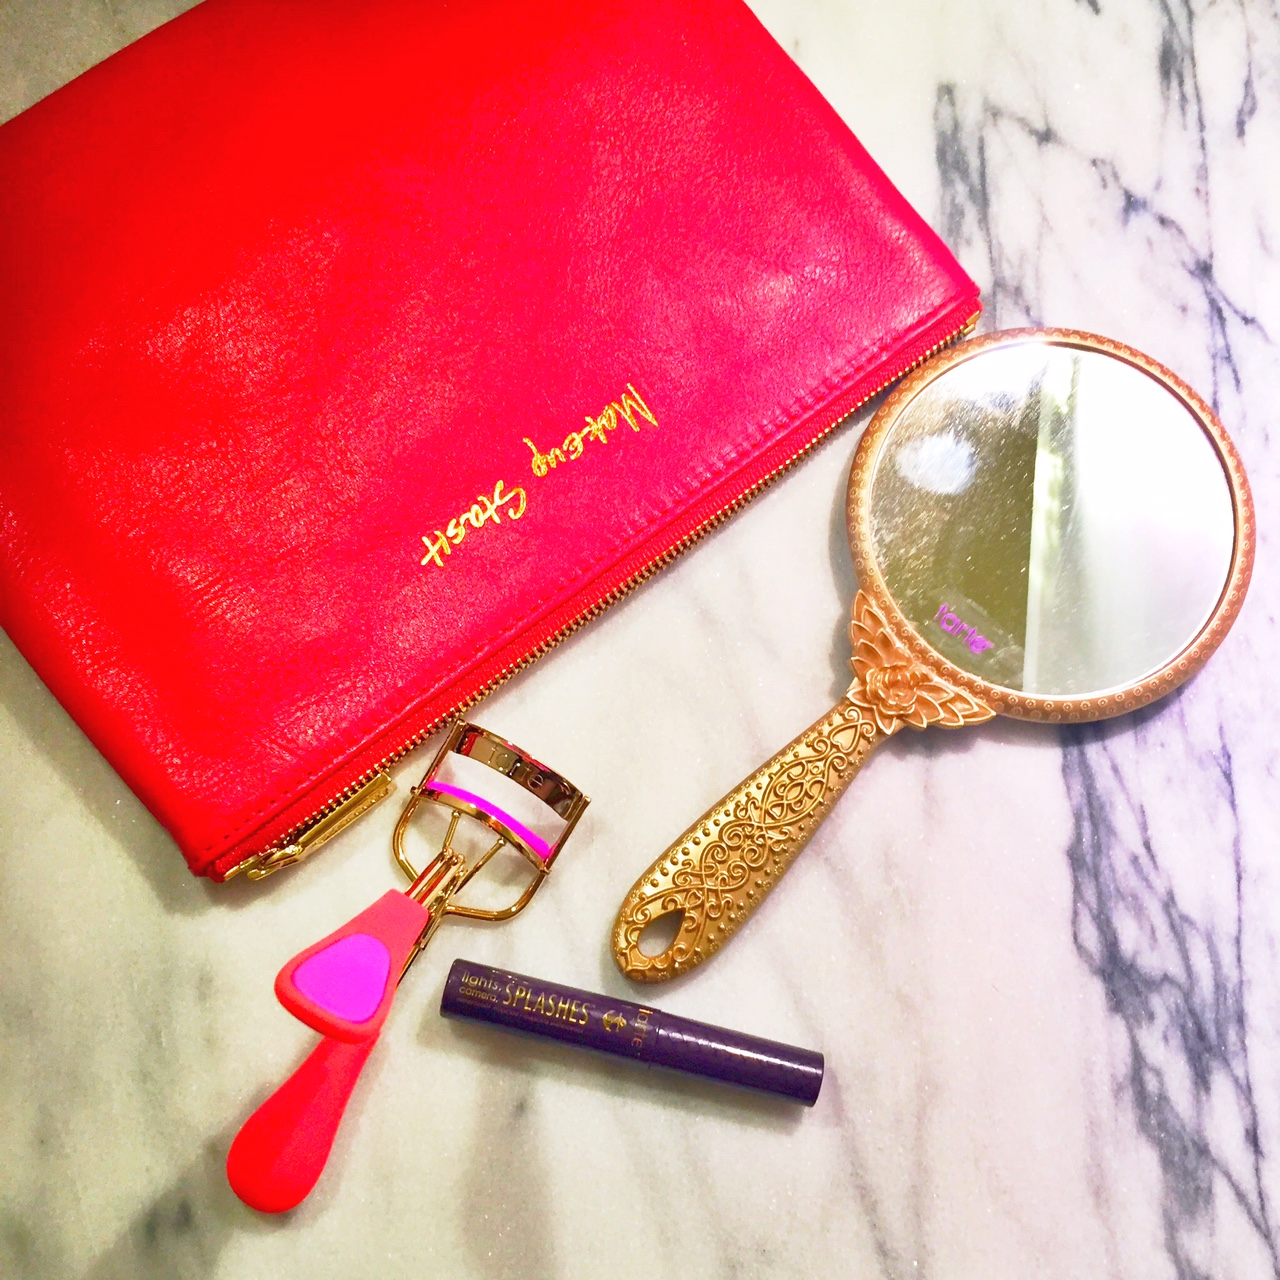 On Wednesdays We Use Pink Lash Curlers Rouge 18